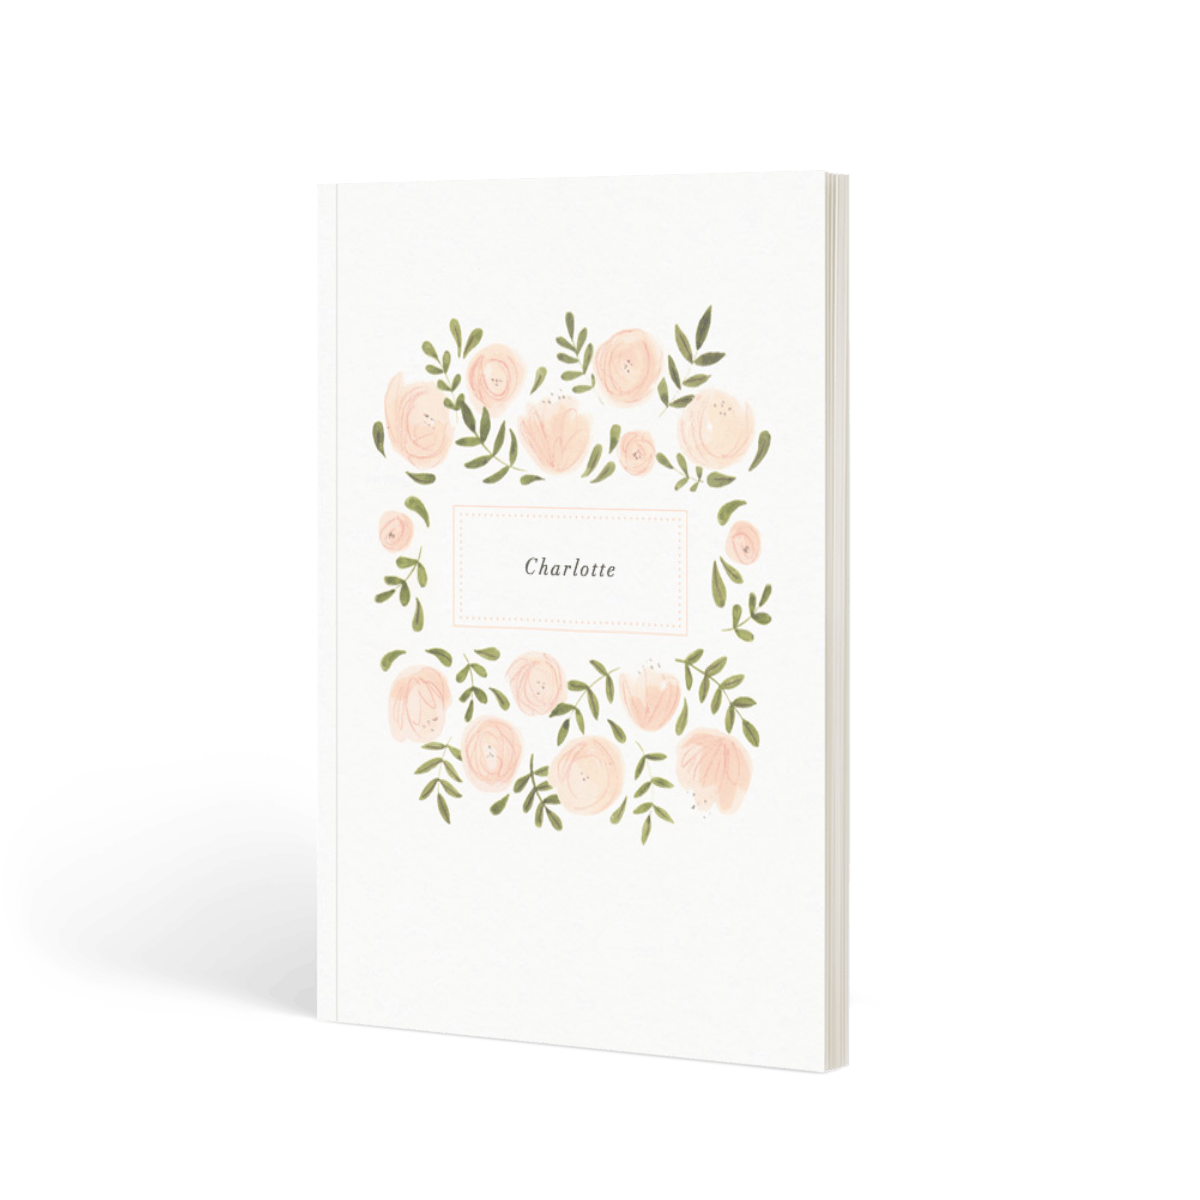 Https%3a%2f%2fwww.papier.com%2fproduct image%2f6392%2f6%2fblush florals 1627 front 1534512778.png?ixlib=rb 1.1